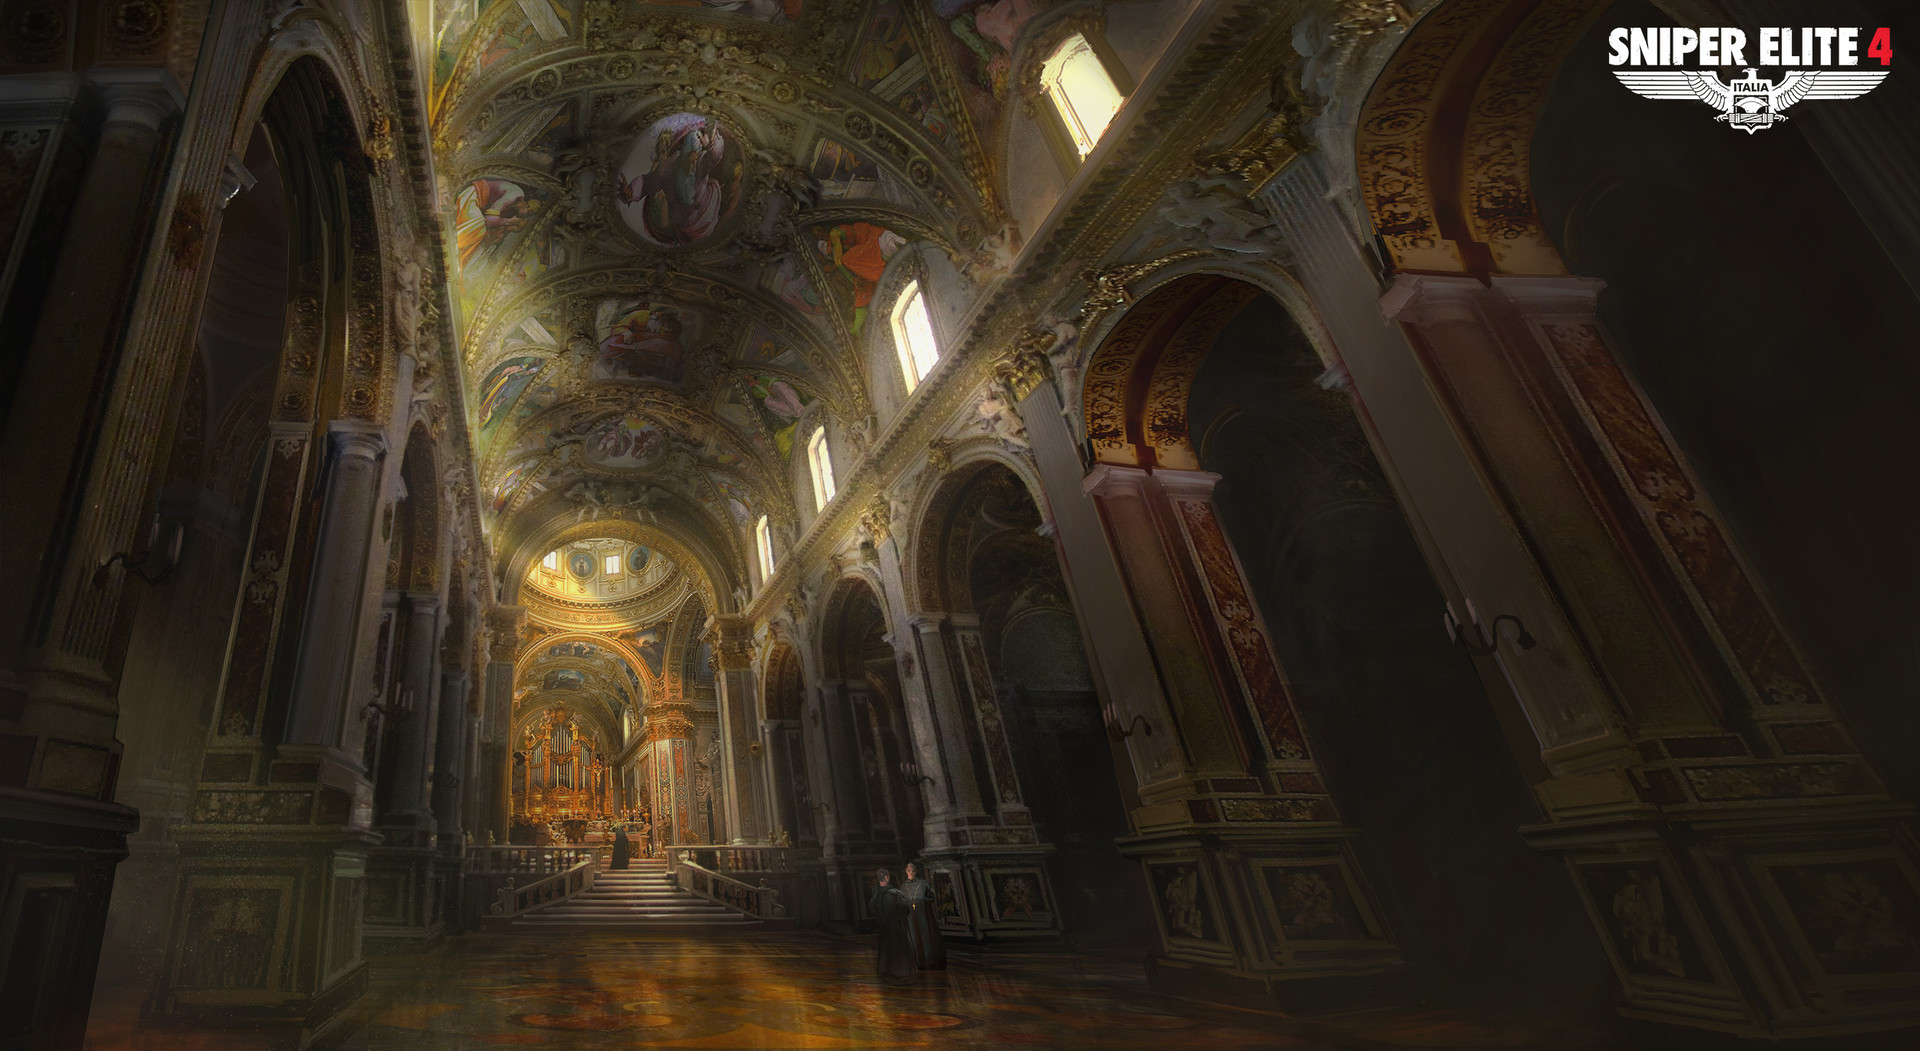 Jack eaves monte cassino abbey interior